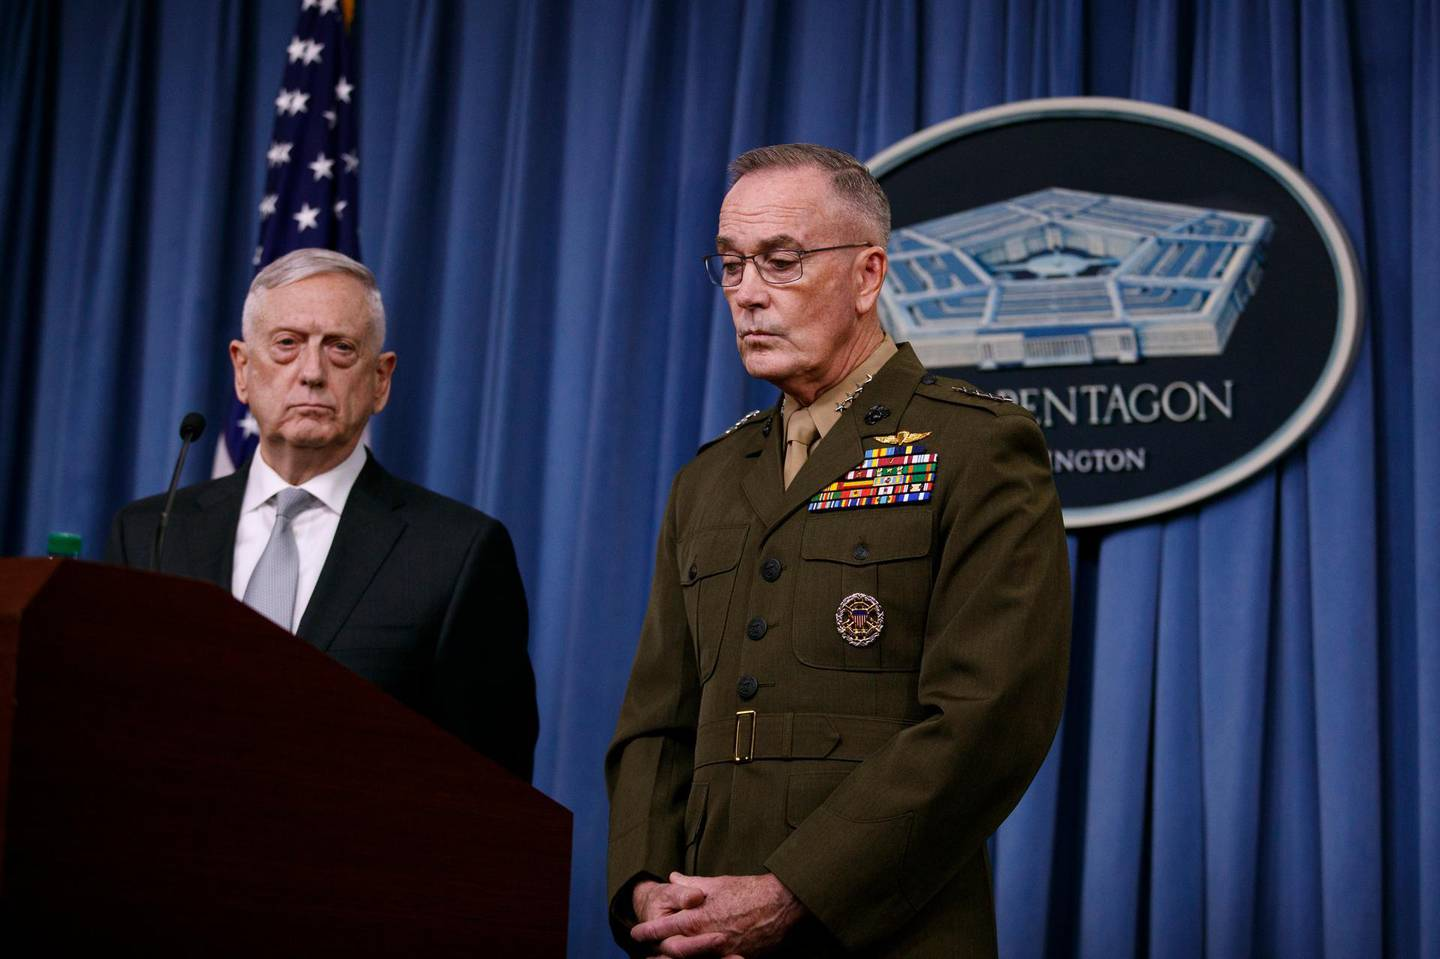 Defense Secretary Jim Mattis, joined by Joint Chiefs Chairman Gen. Joseph Dunford, speak at the Pentagon, Friday, April 13, 2018, on the U.S. military response, along with France and Britain, to Syria's chemical weapon attack on April 7. (AP Photo/Carolyn Kaster)